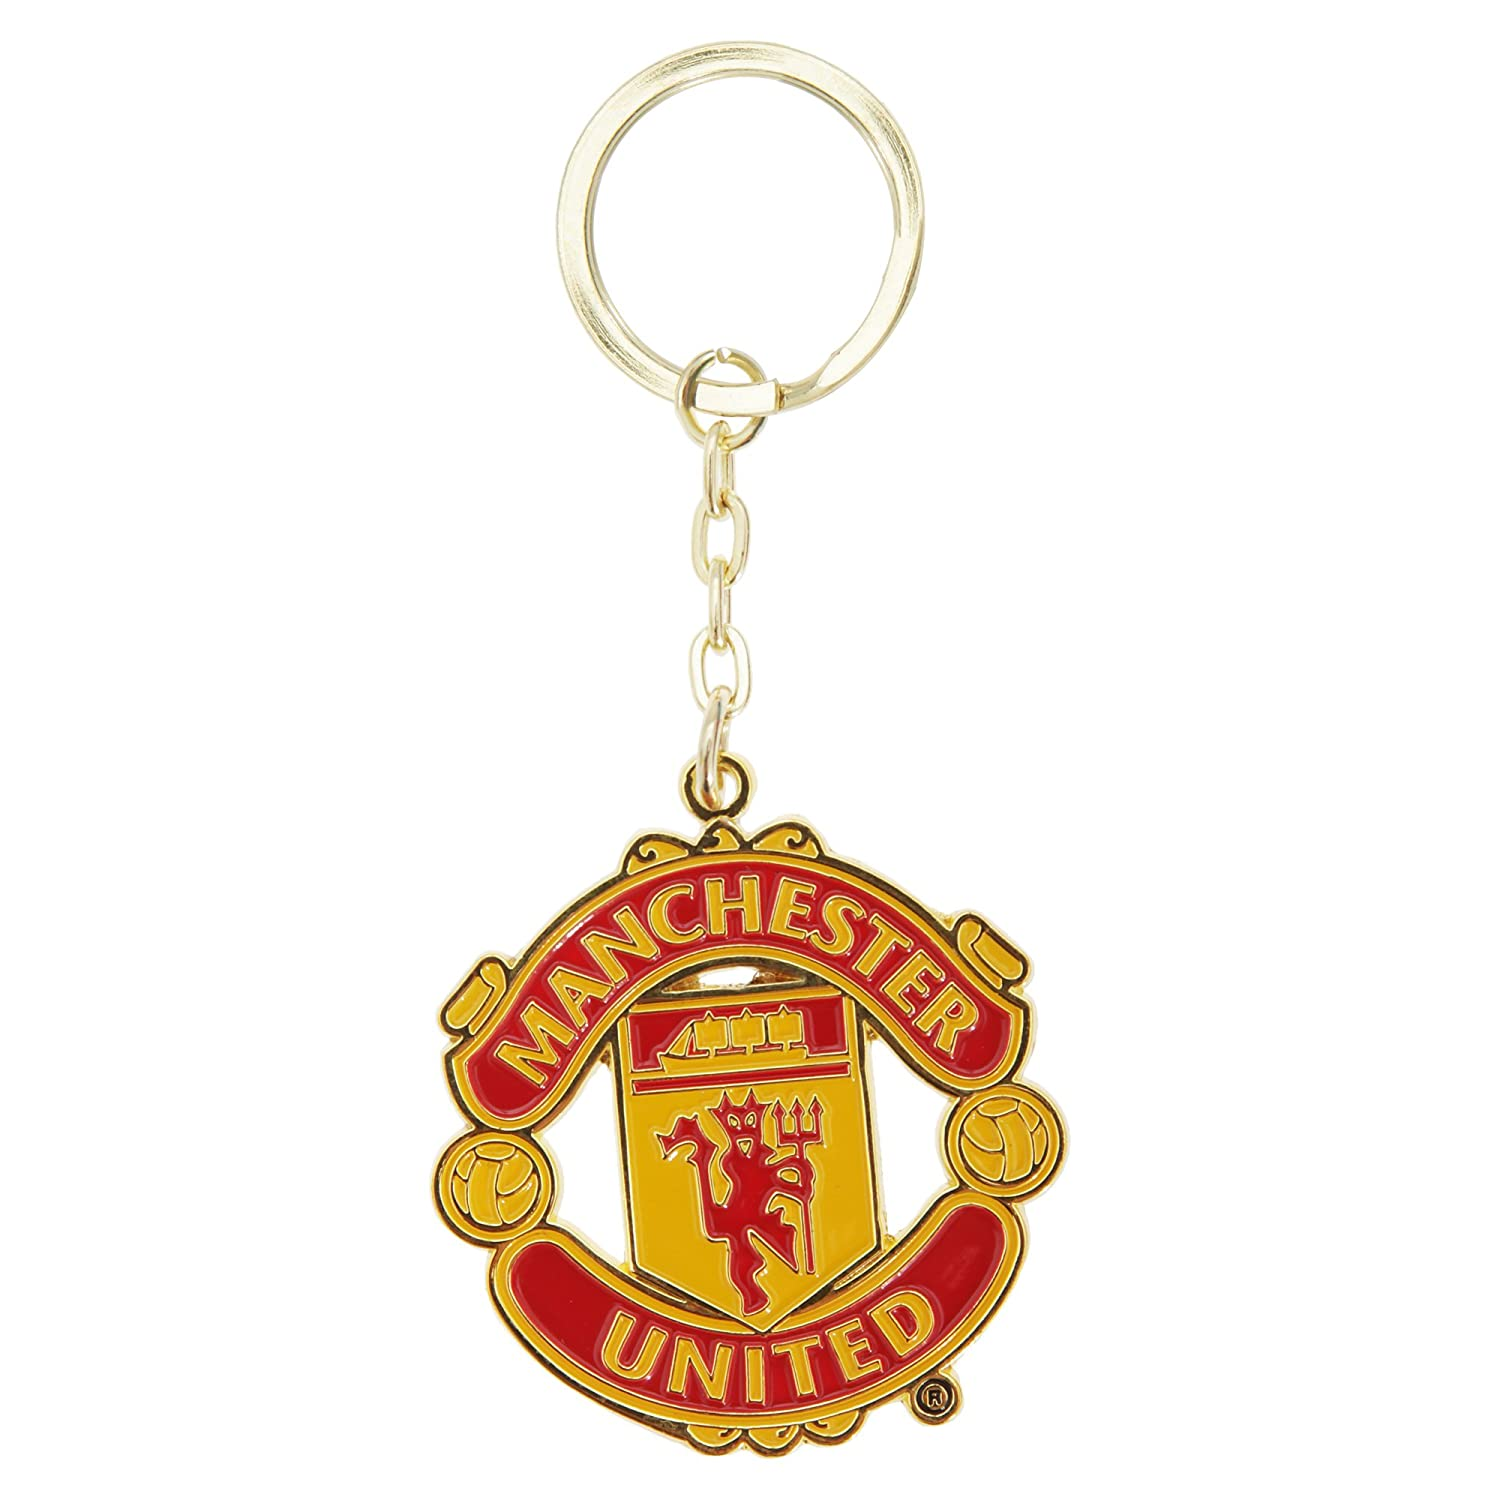 Manchester United FC Official Metal Football Crest Keyring (One Size) (Red) UTSG2179_1